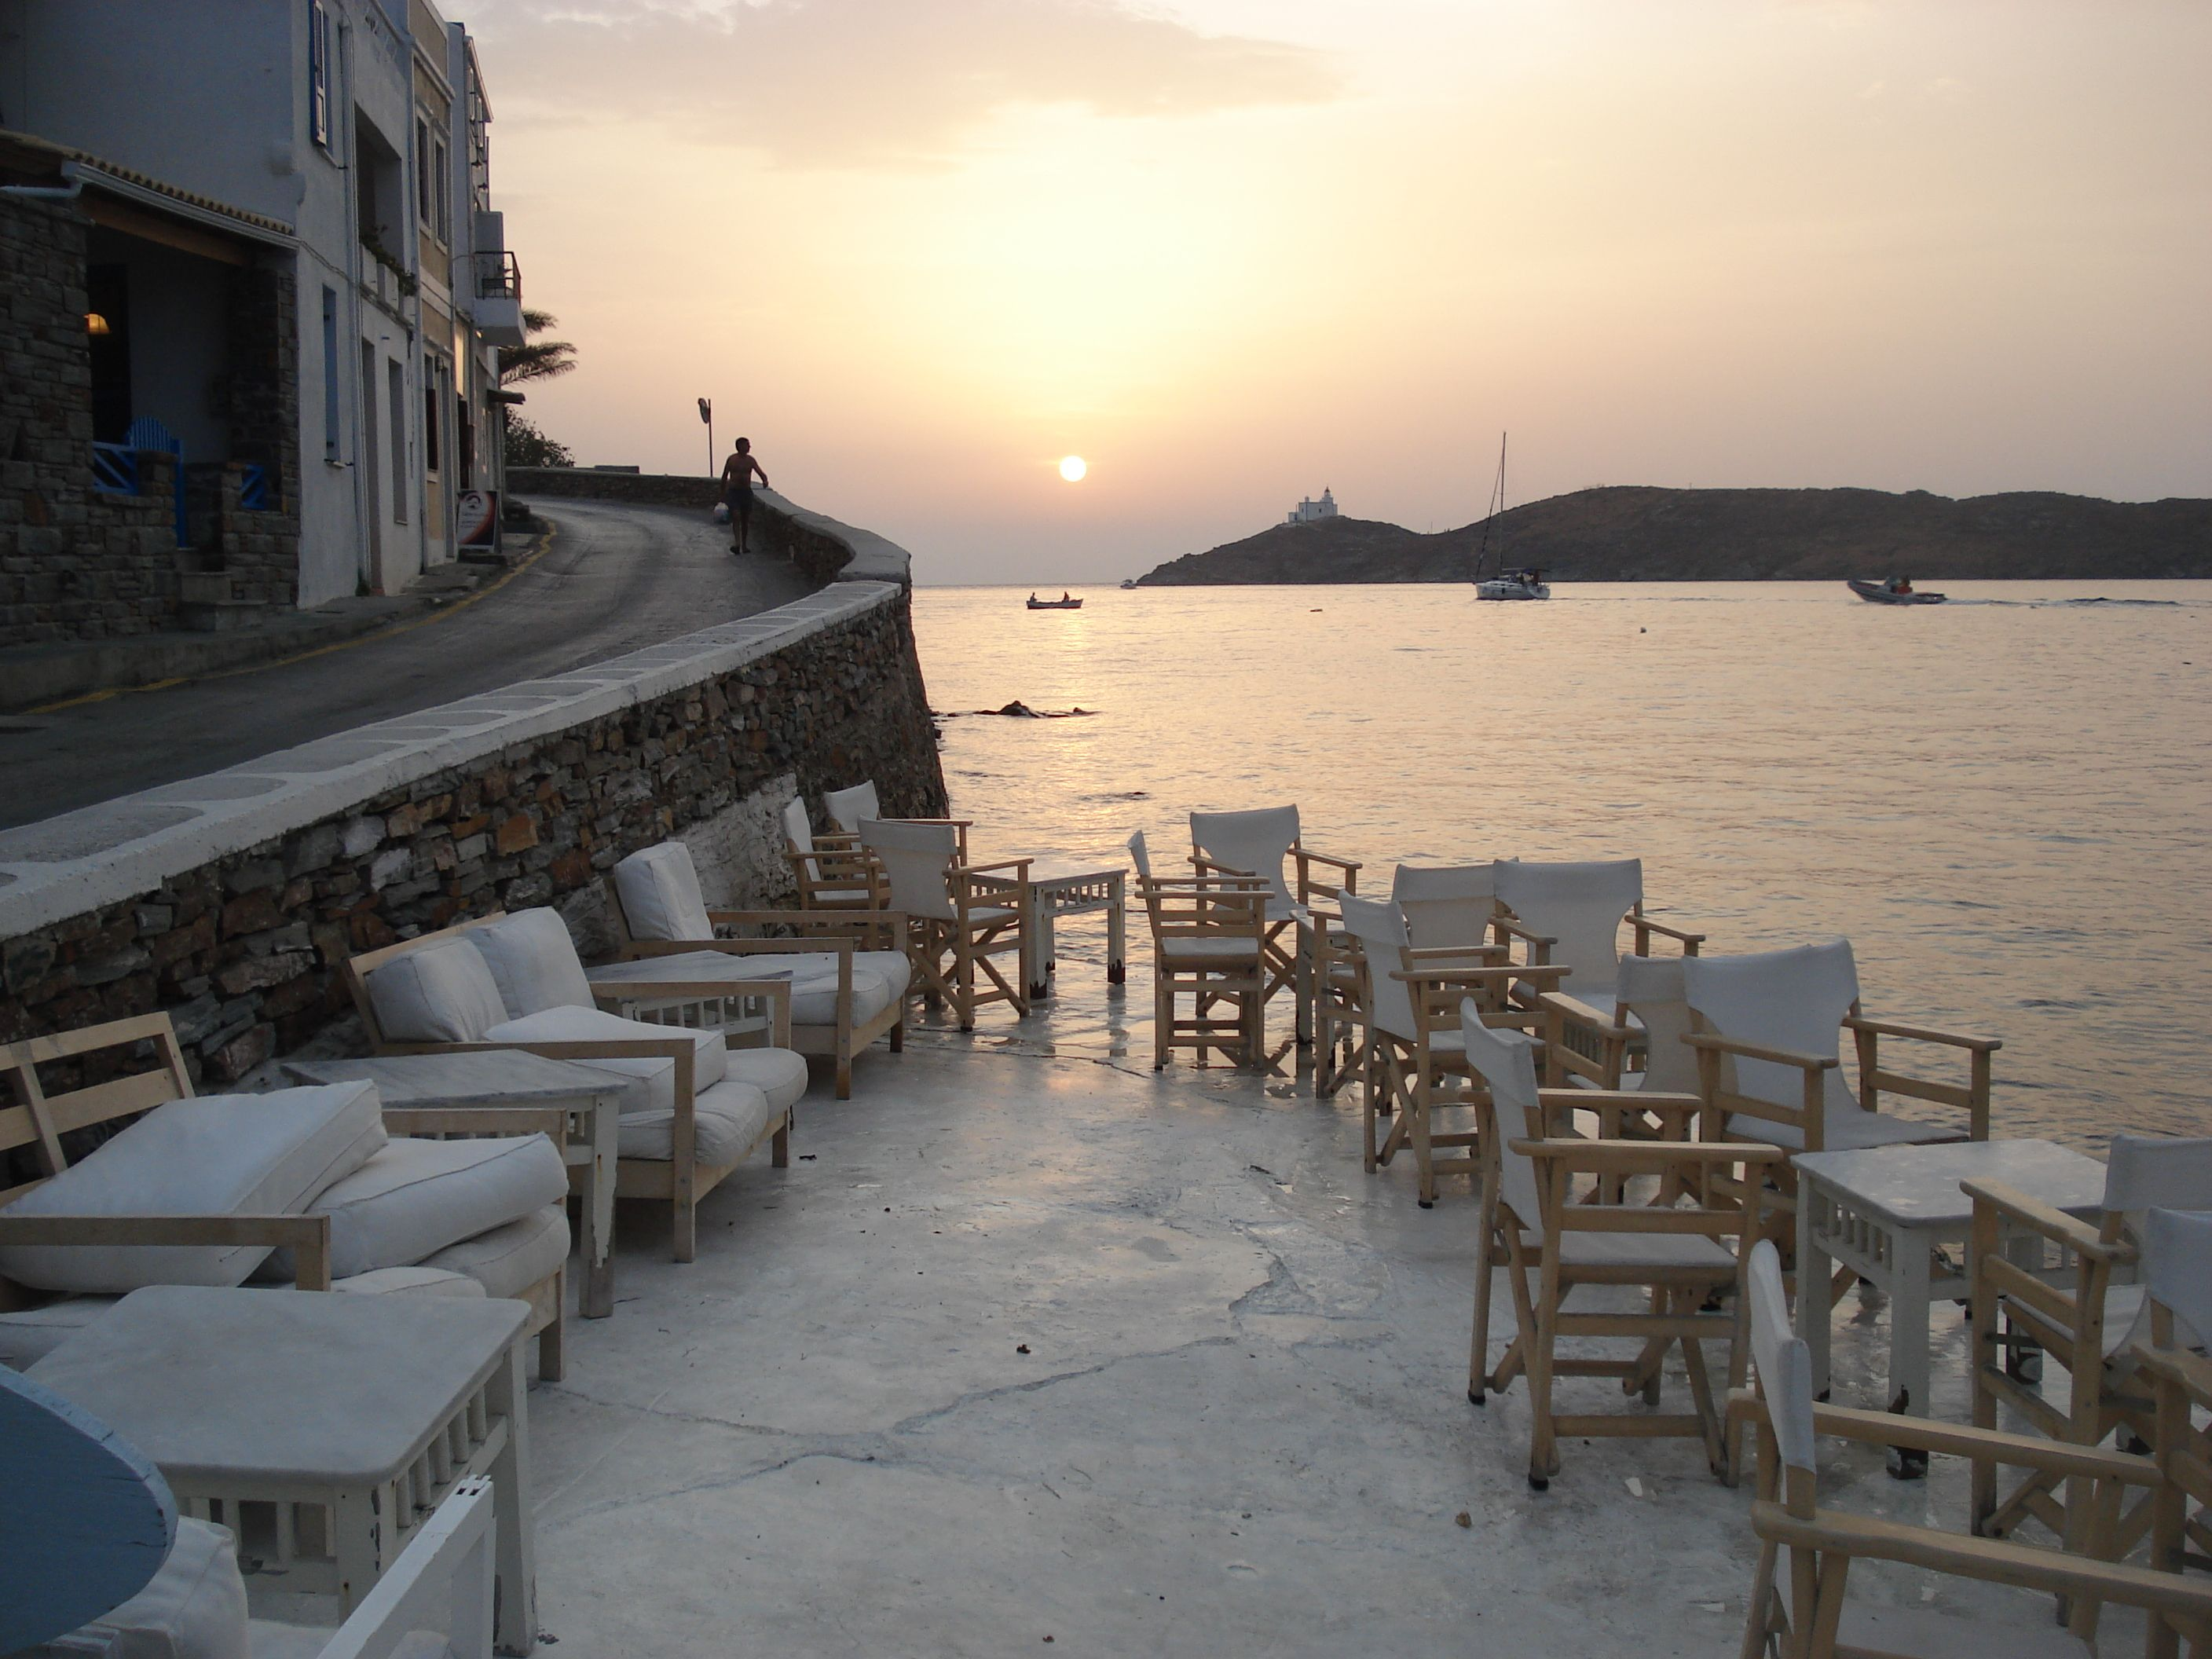 Pin by Oia Mansion on Wish I was there | Greece travel, Greek ...